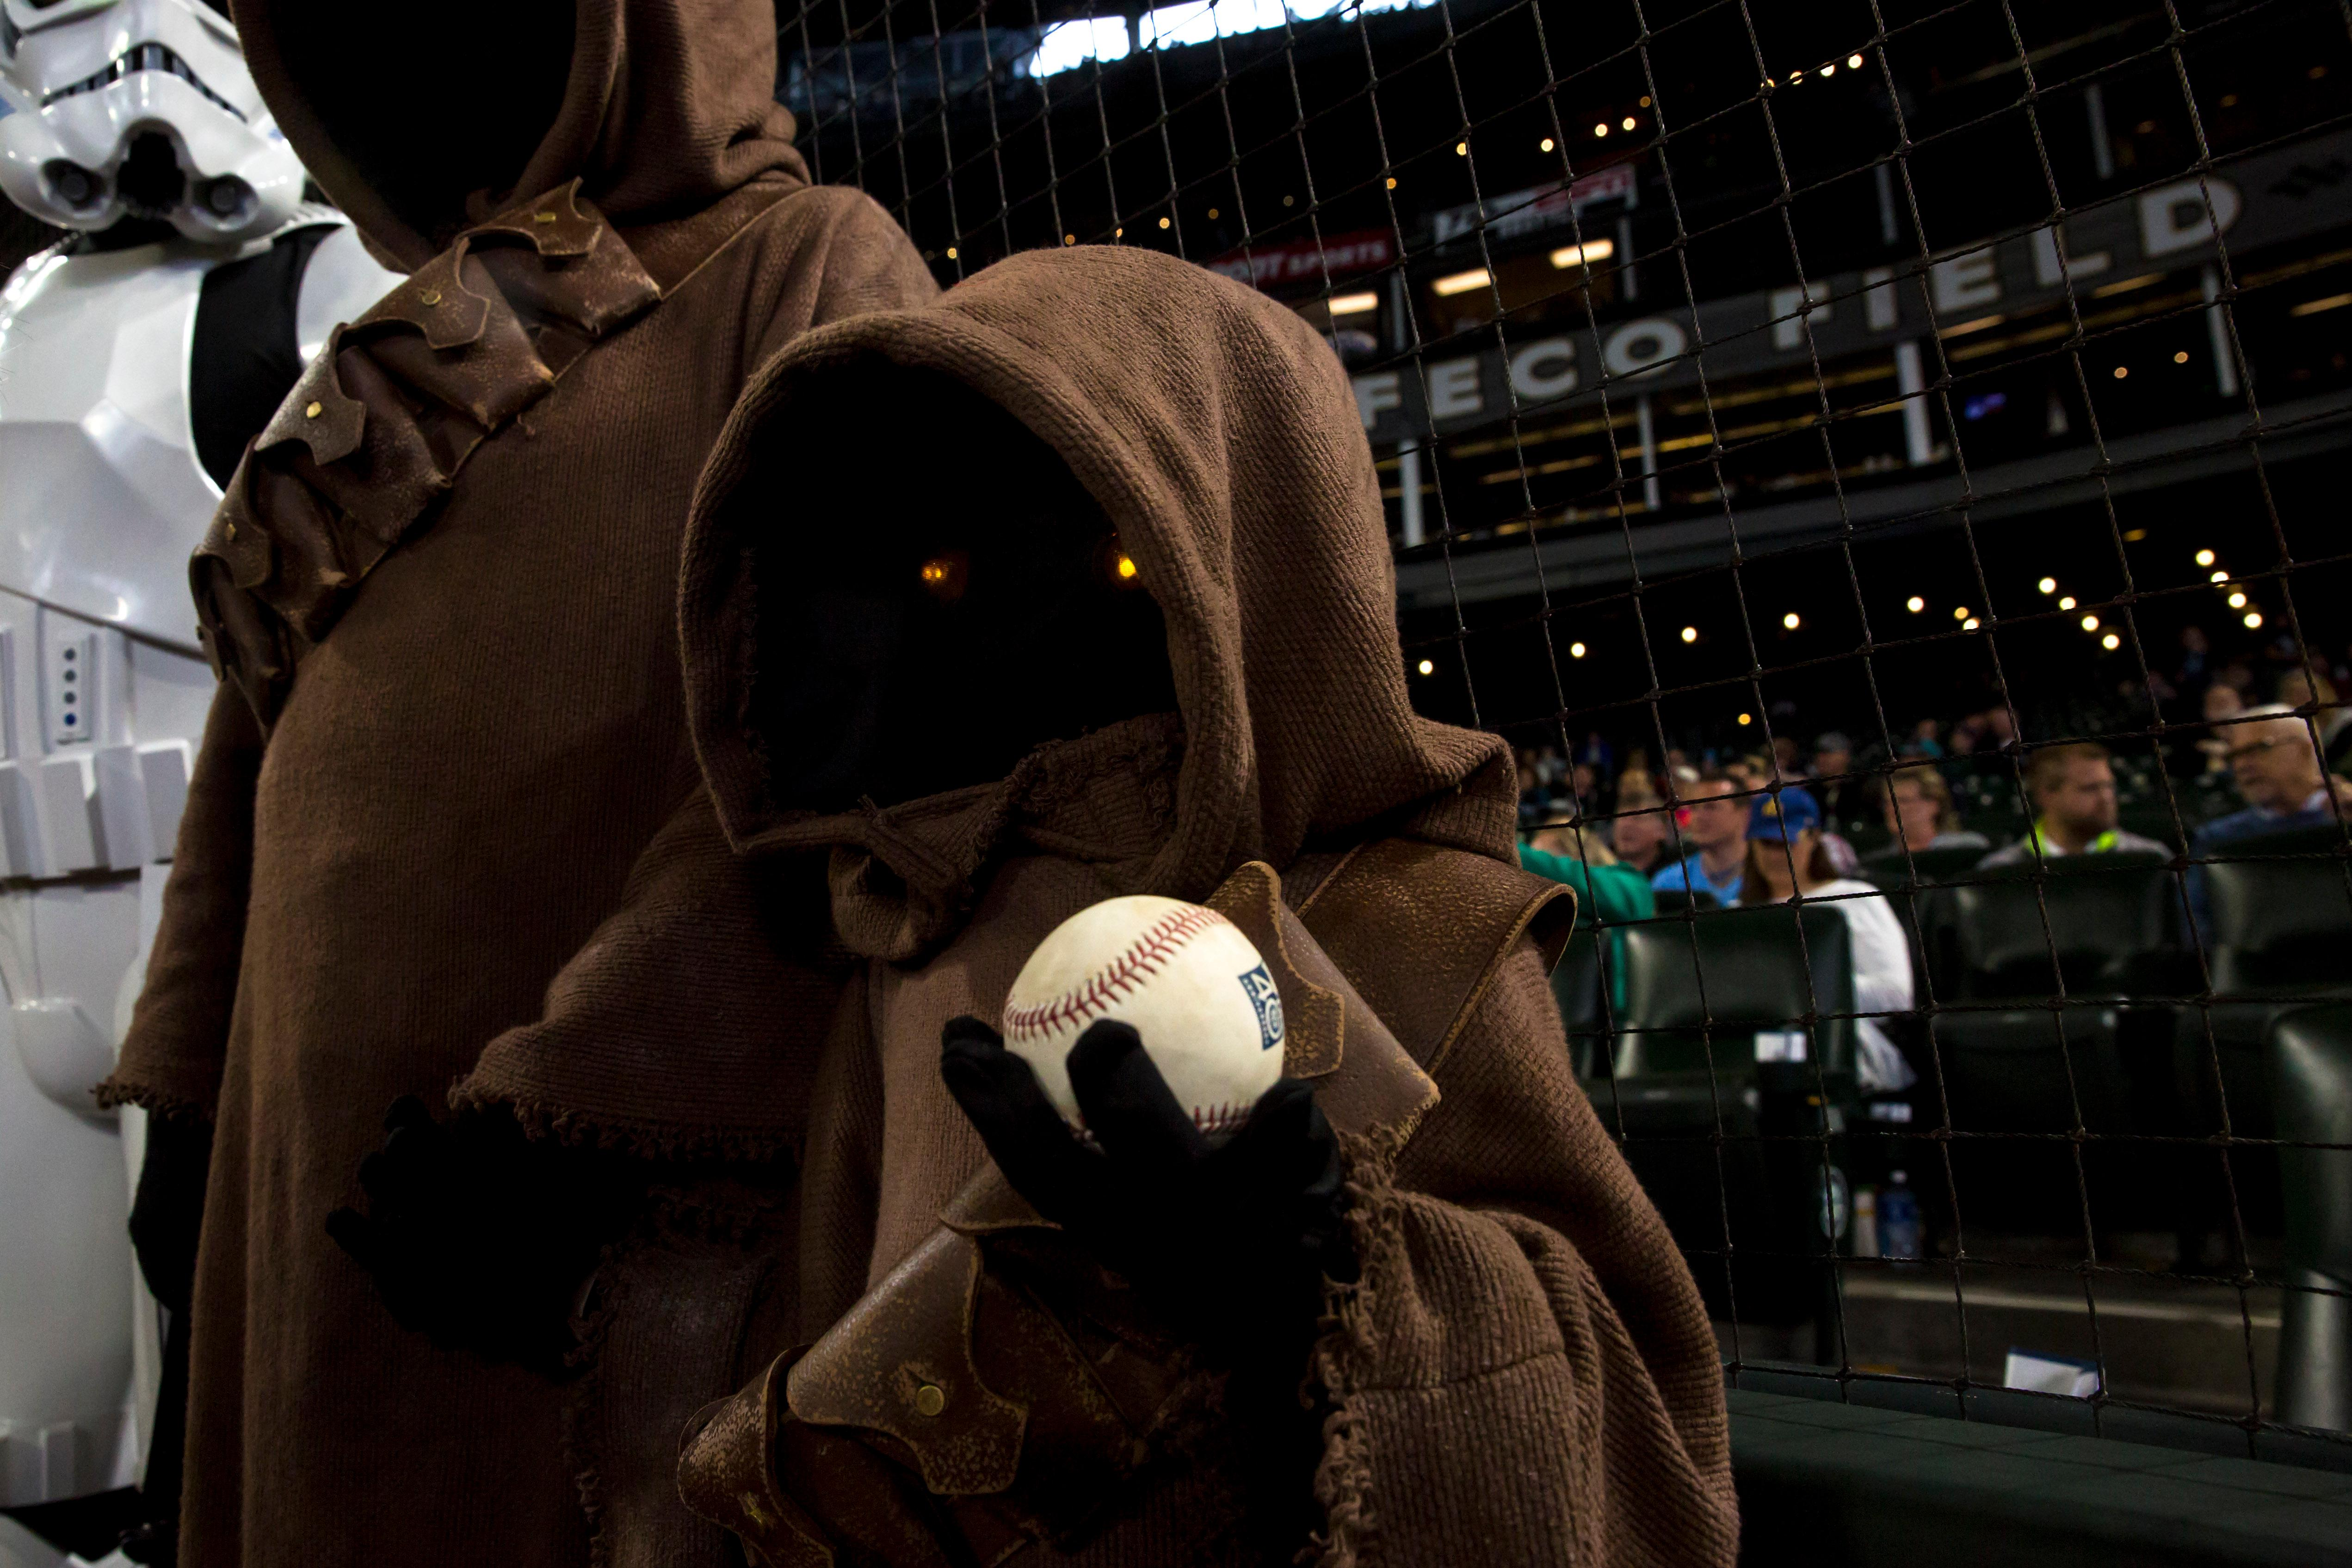 May the fourth be with you! Mariners fans enjoy a Star Wars themed night at Safeco Field on Star Wars Day.